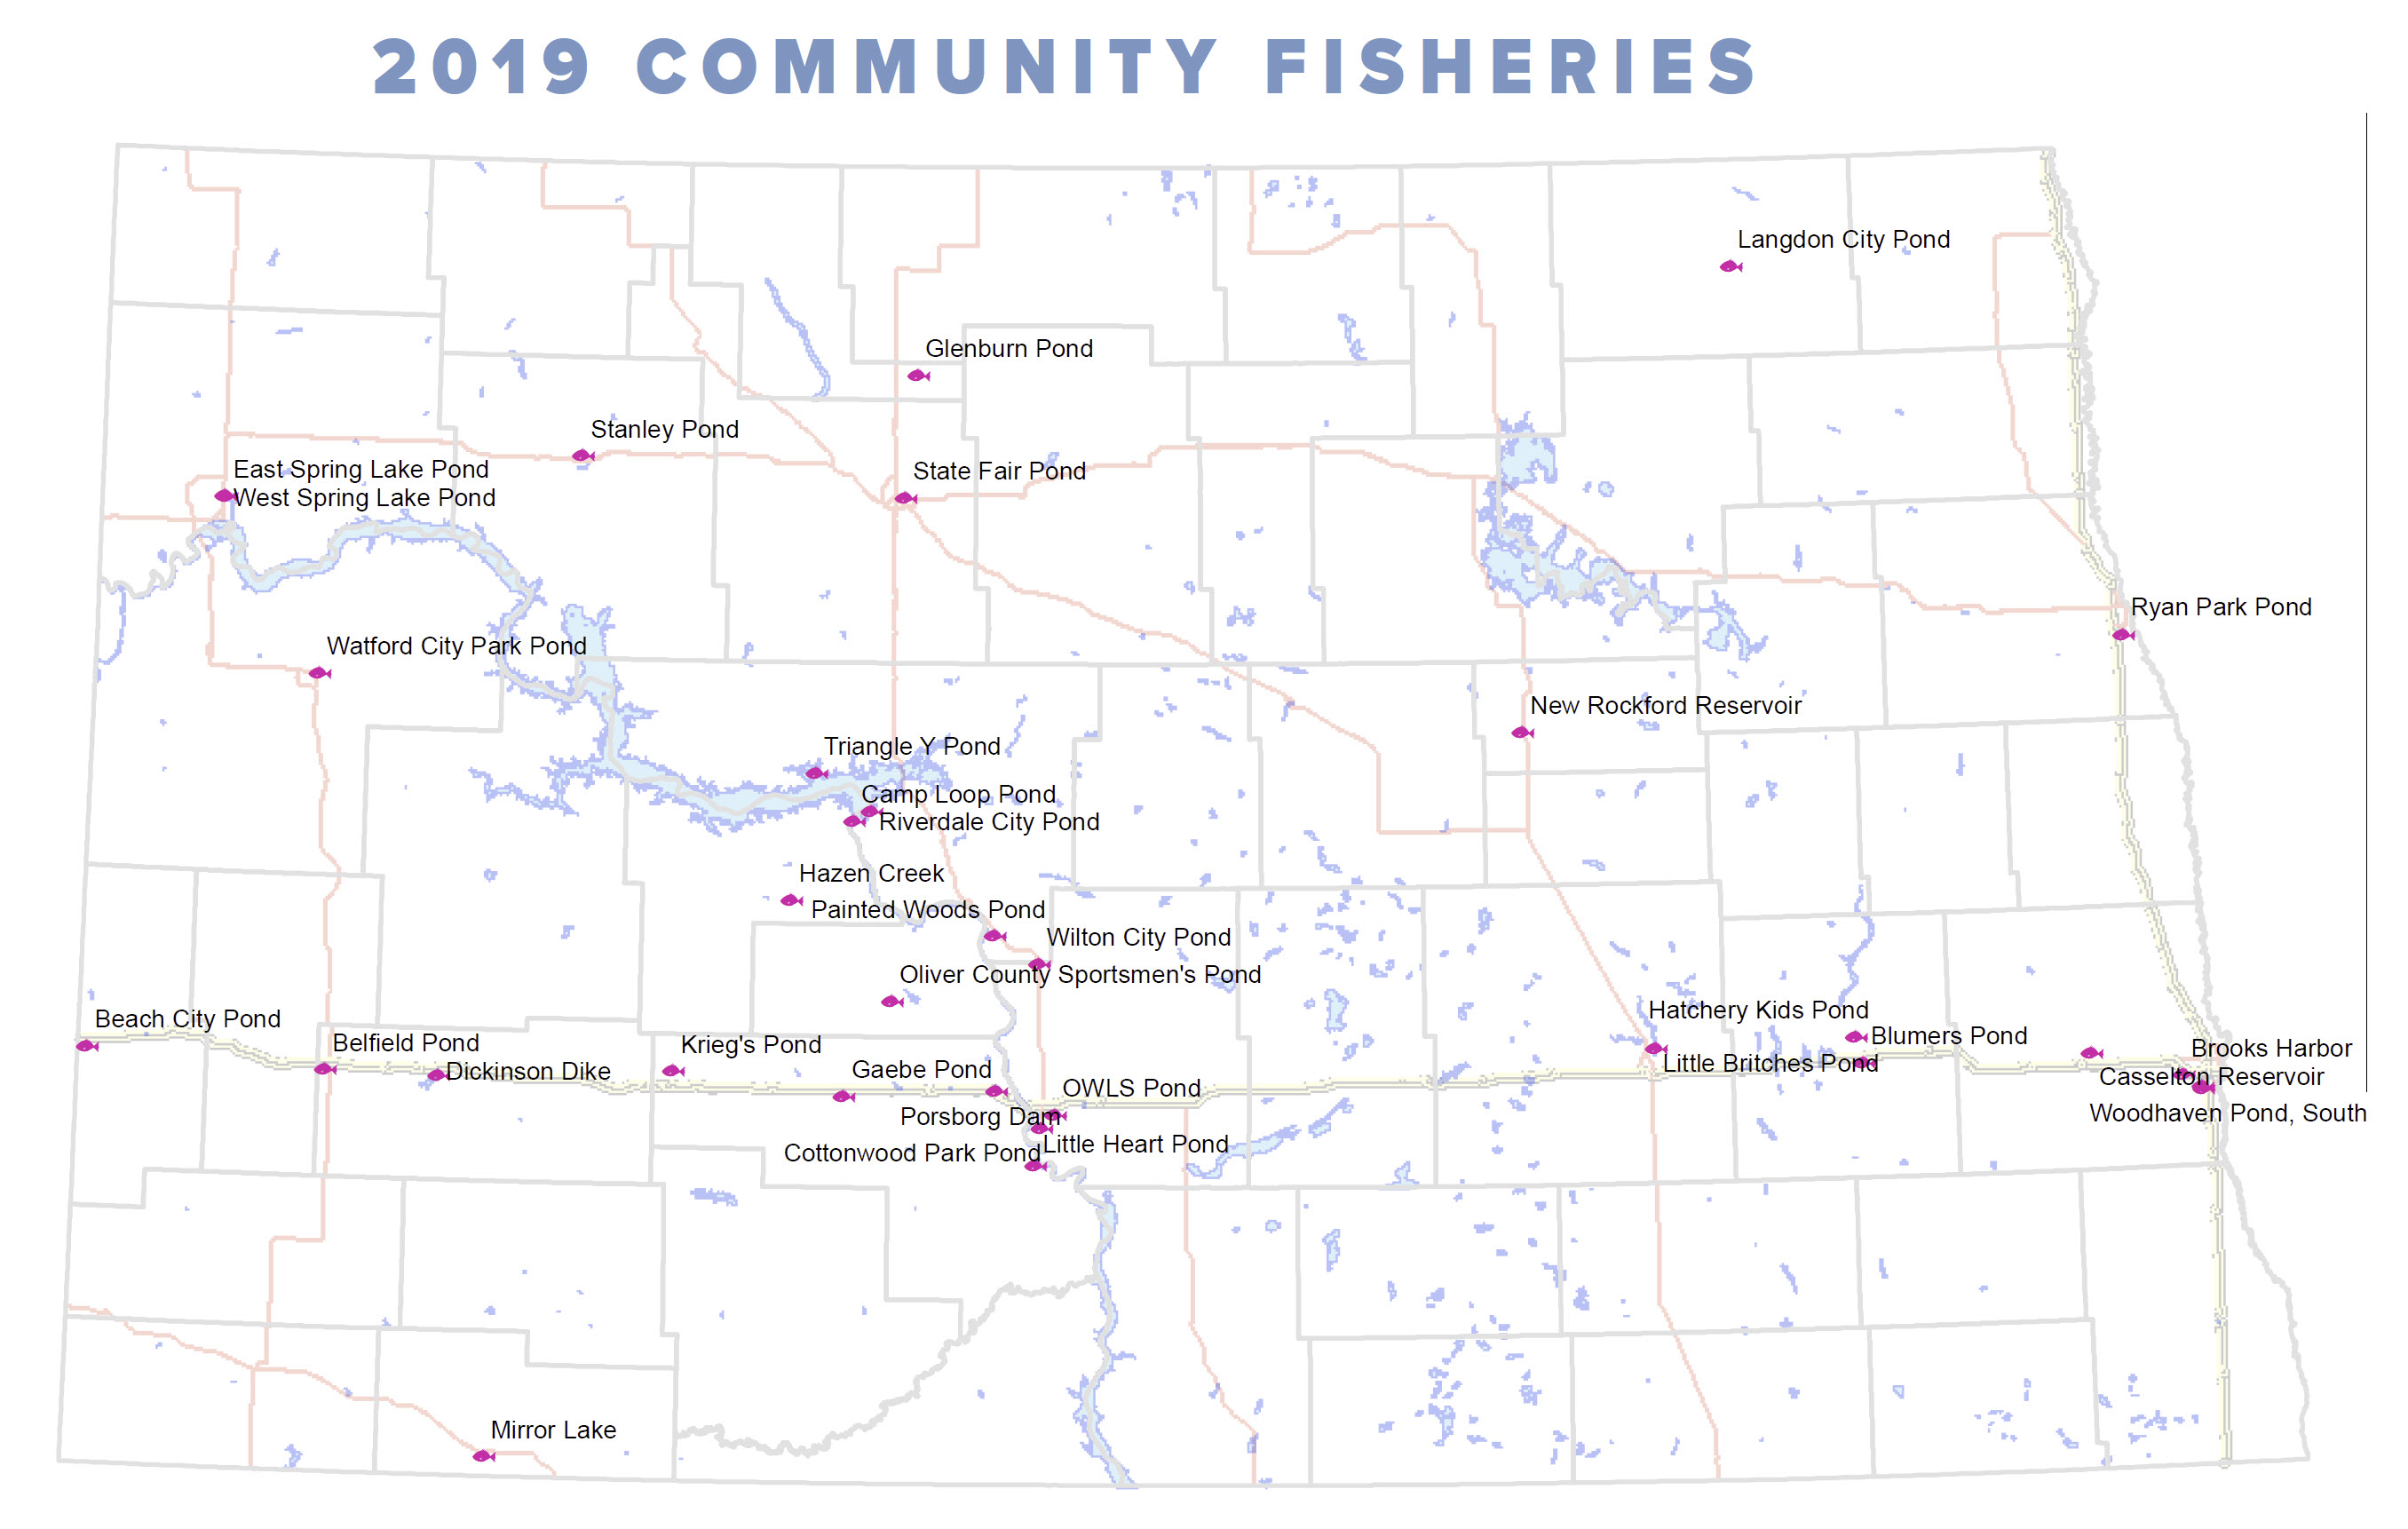 2019 Community Fisheries Map